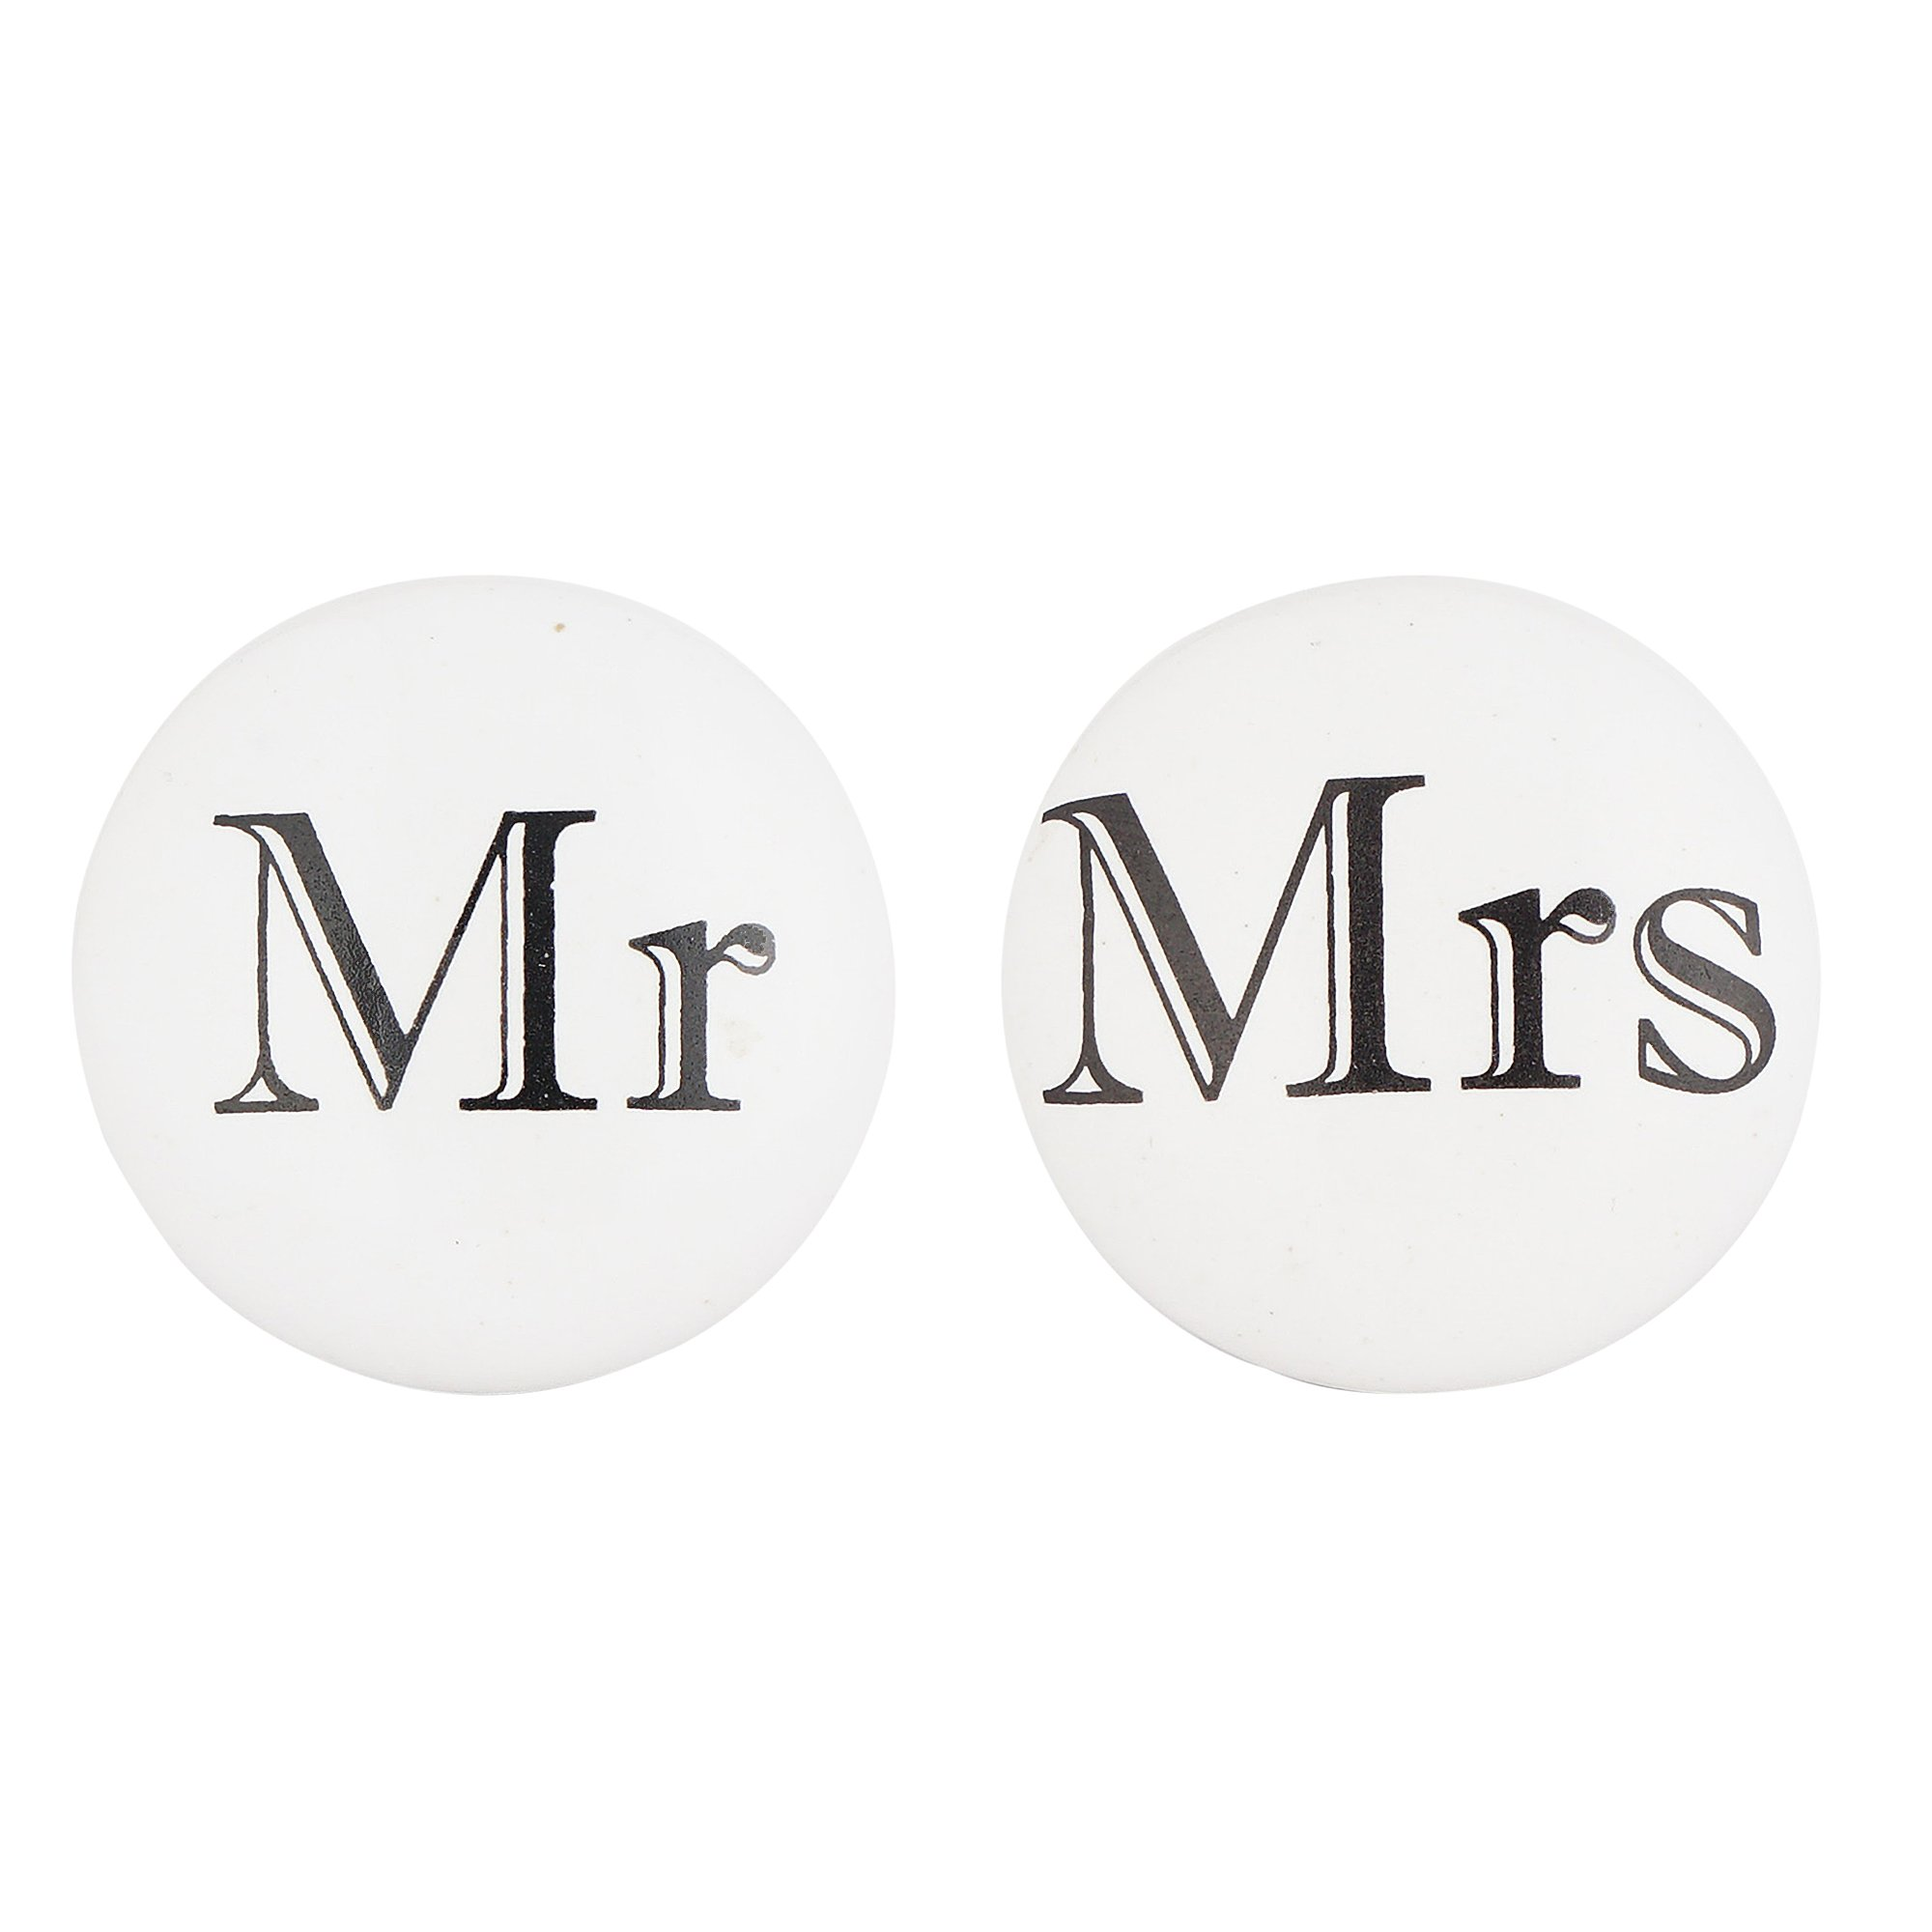 Set of 4 Mr and Mrs Knobs – Ceramic Drawer Pulls for Cabinets, Dressers and Drawers – Hand Painted Knobs for Bathroom, Bedroom, Kitchen, and Living Room Cabinetry by Artisanal Creations